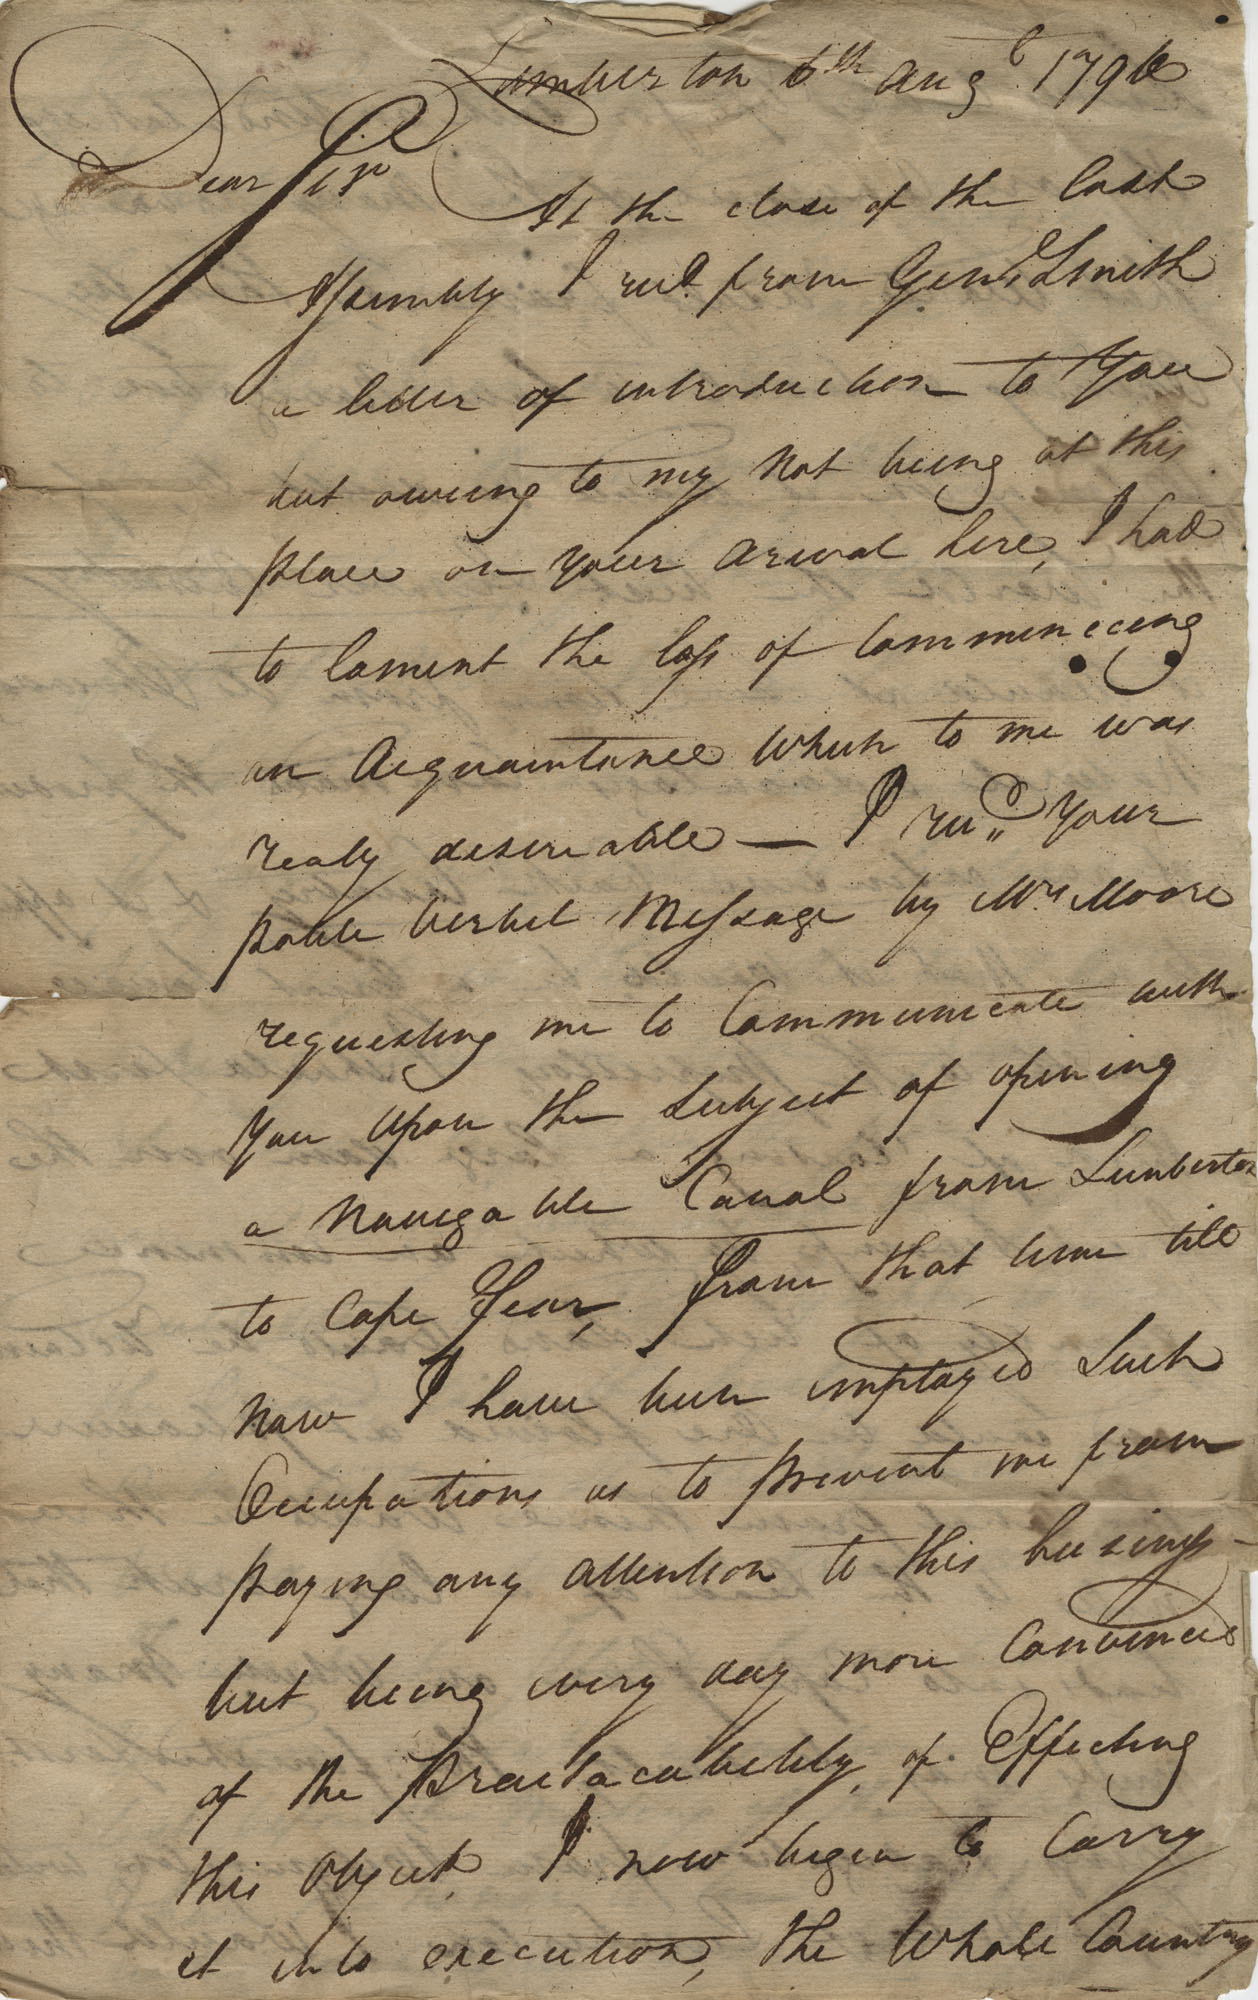 Letter to John F. Grimke from General Willis, August 6, 1796